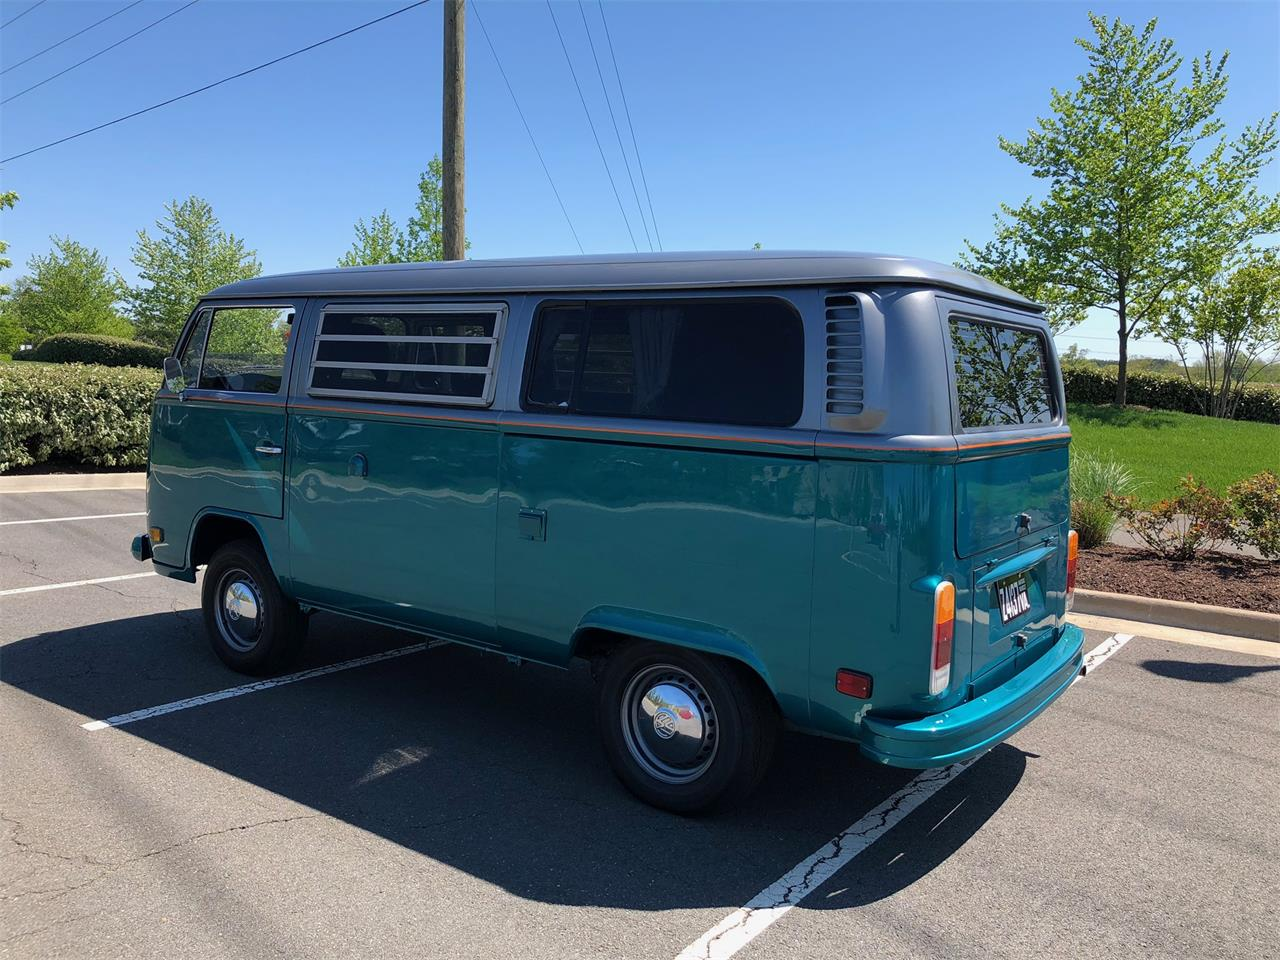 Large Picture of '76 Volkswagen Bus located in Ashburn Virginia - $25,000.00 - PZCT